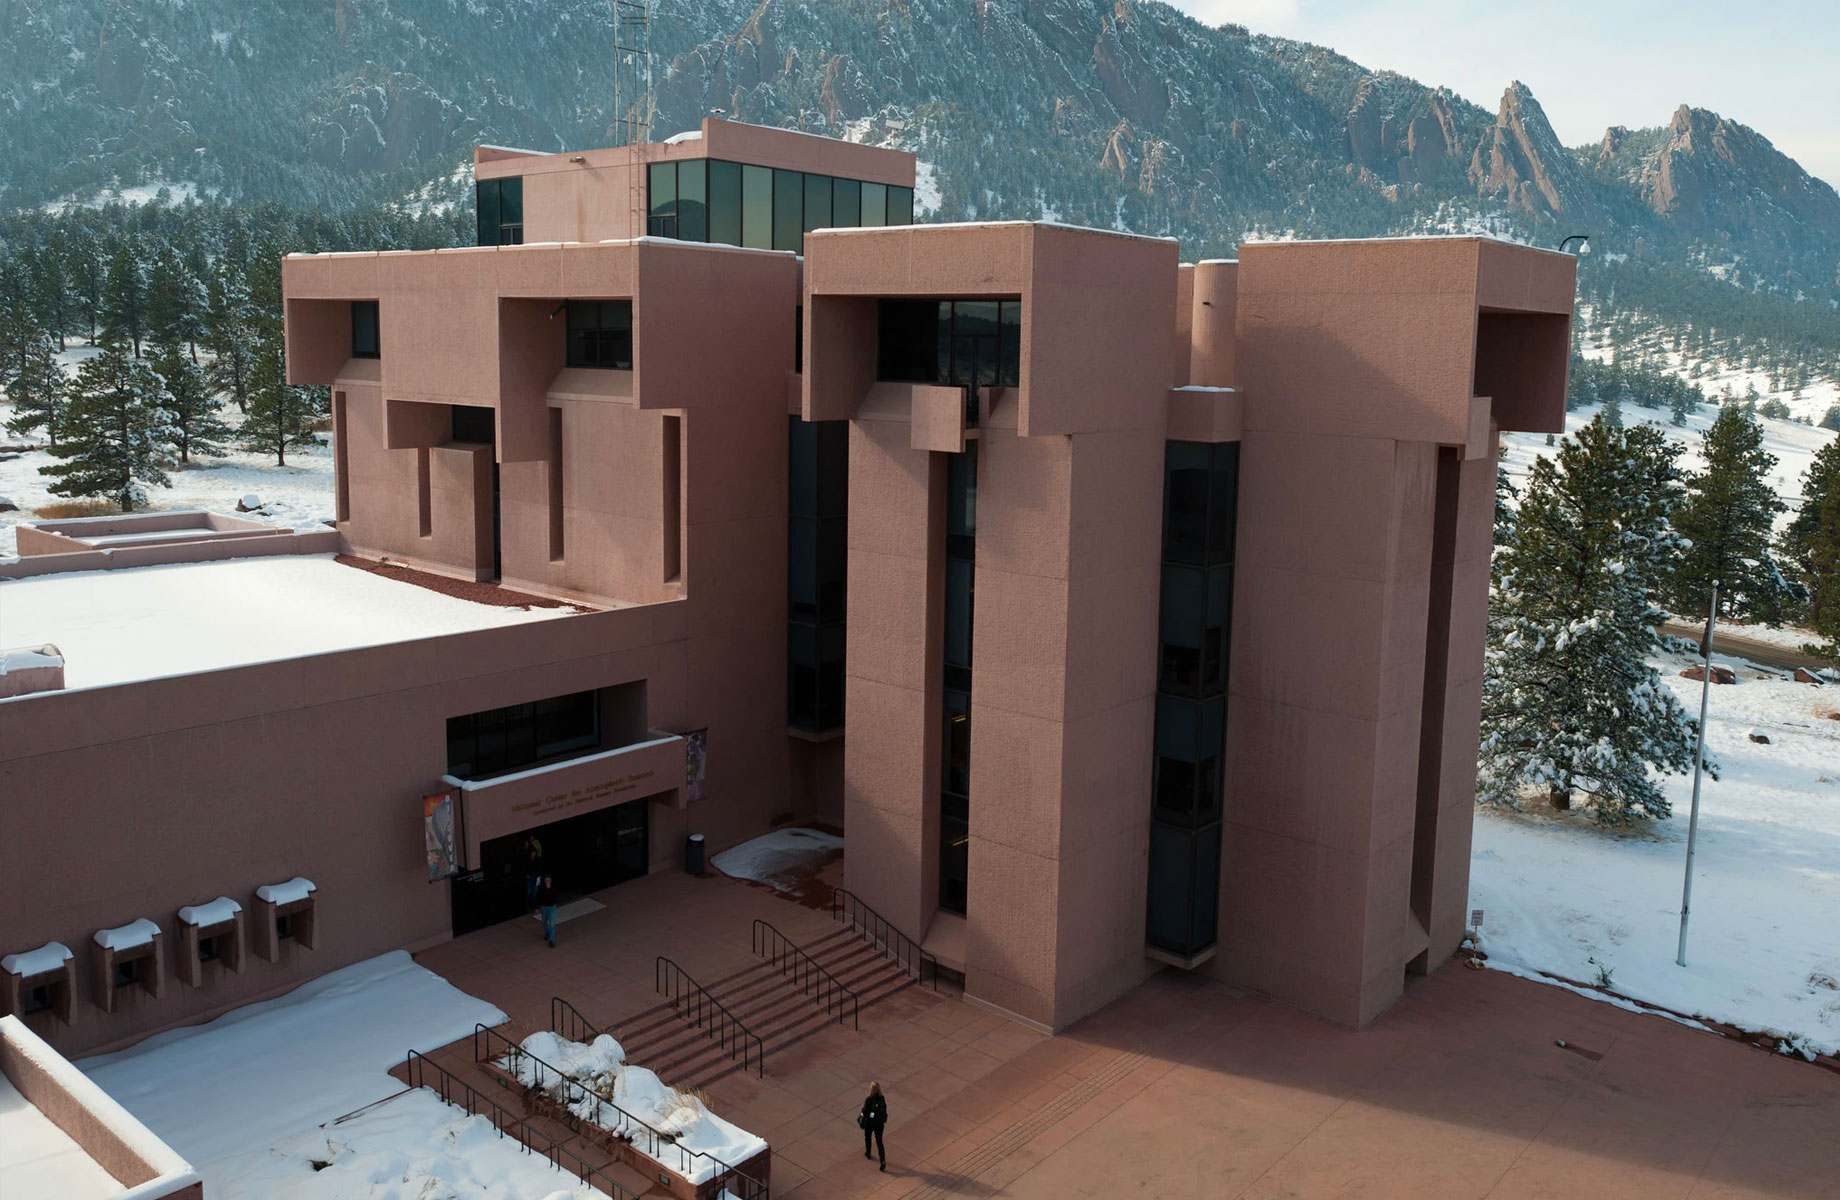 ▲ The National Center for Atmospheric Research in Boulder, Colorado, built in 1967, echoes the Rocky Mountain foothills.